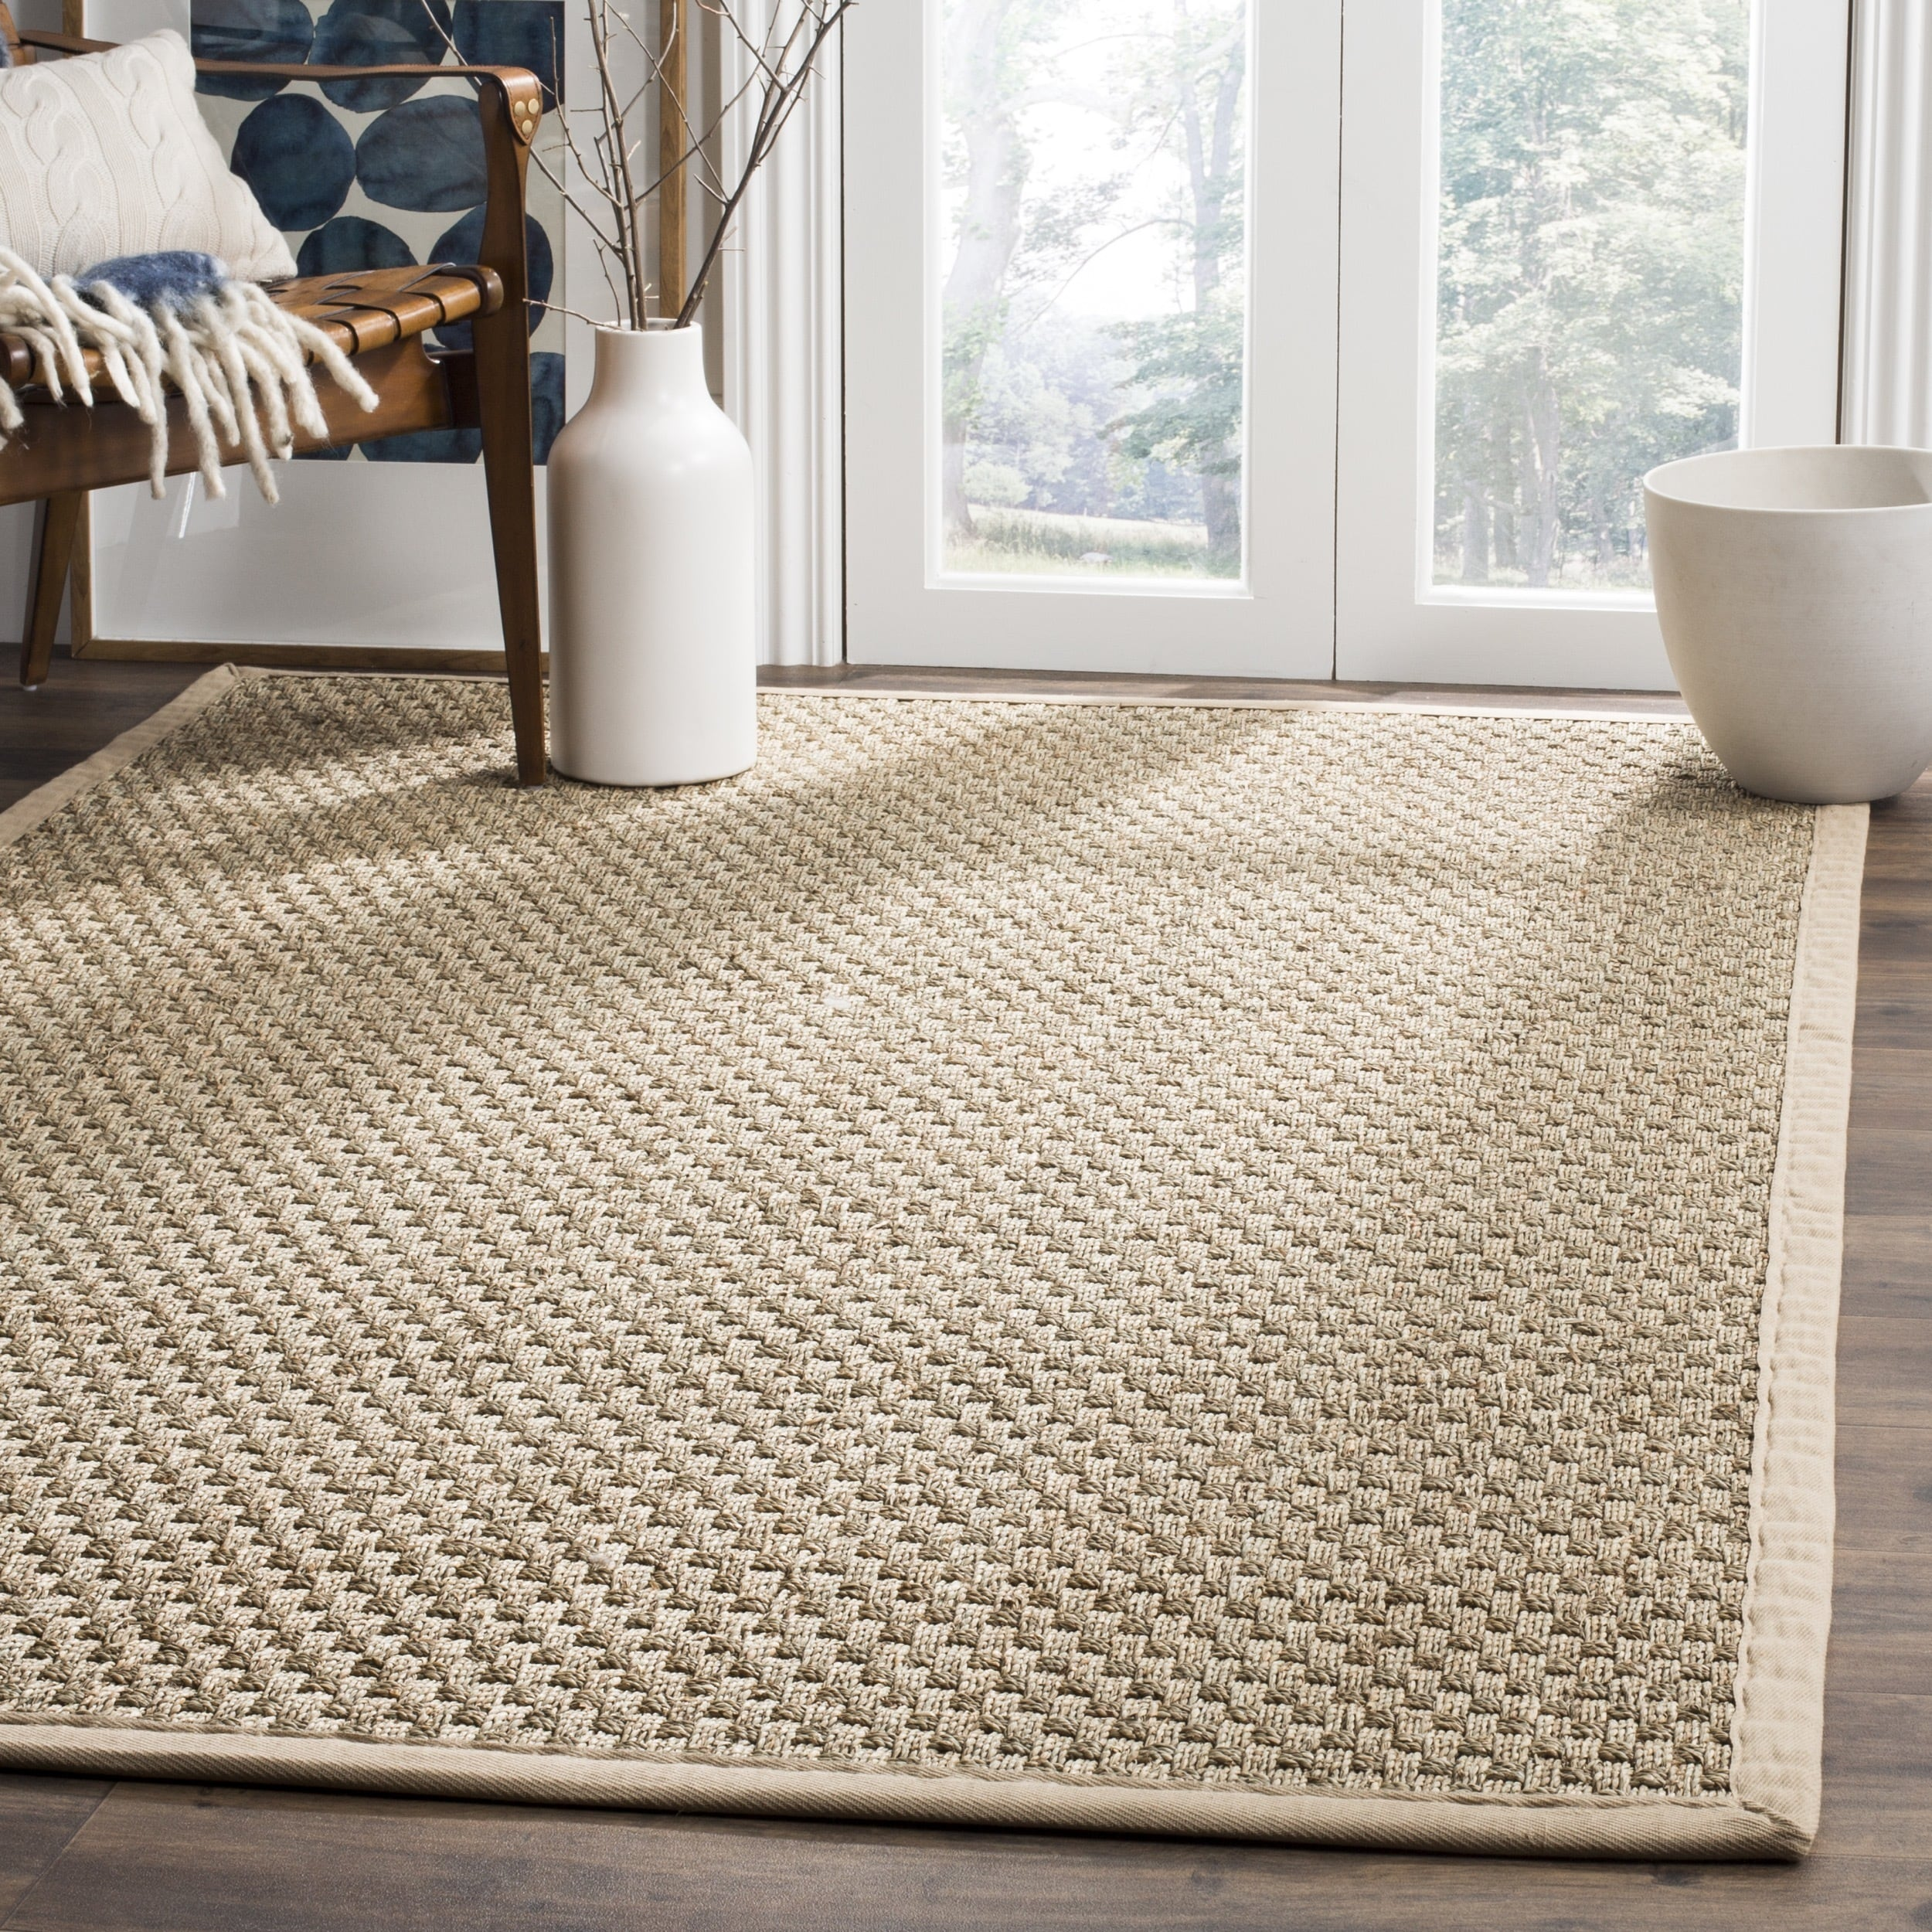 basketweave amazon com summer fiber dining collection kitchen dp rug and seagrass grey safavieh natural area x